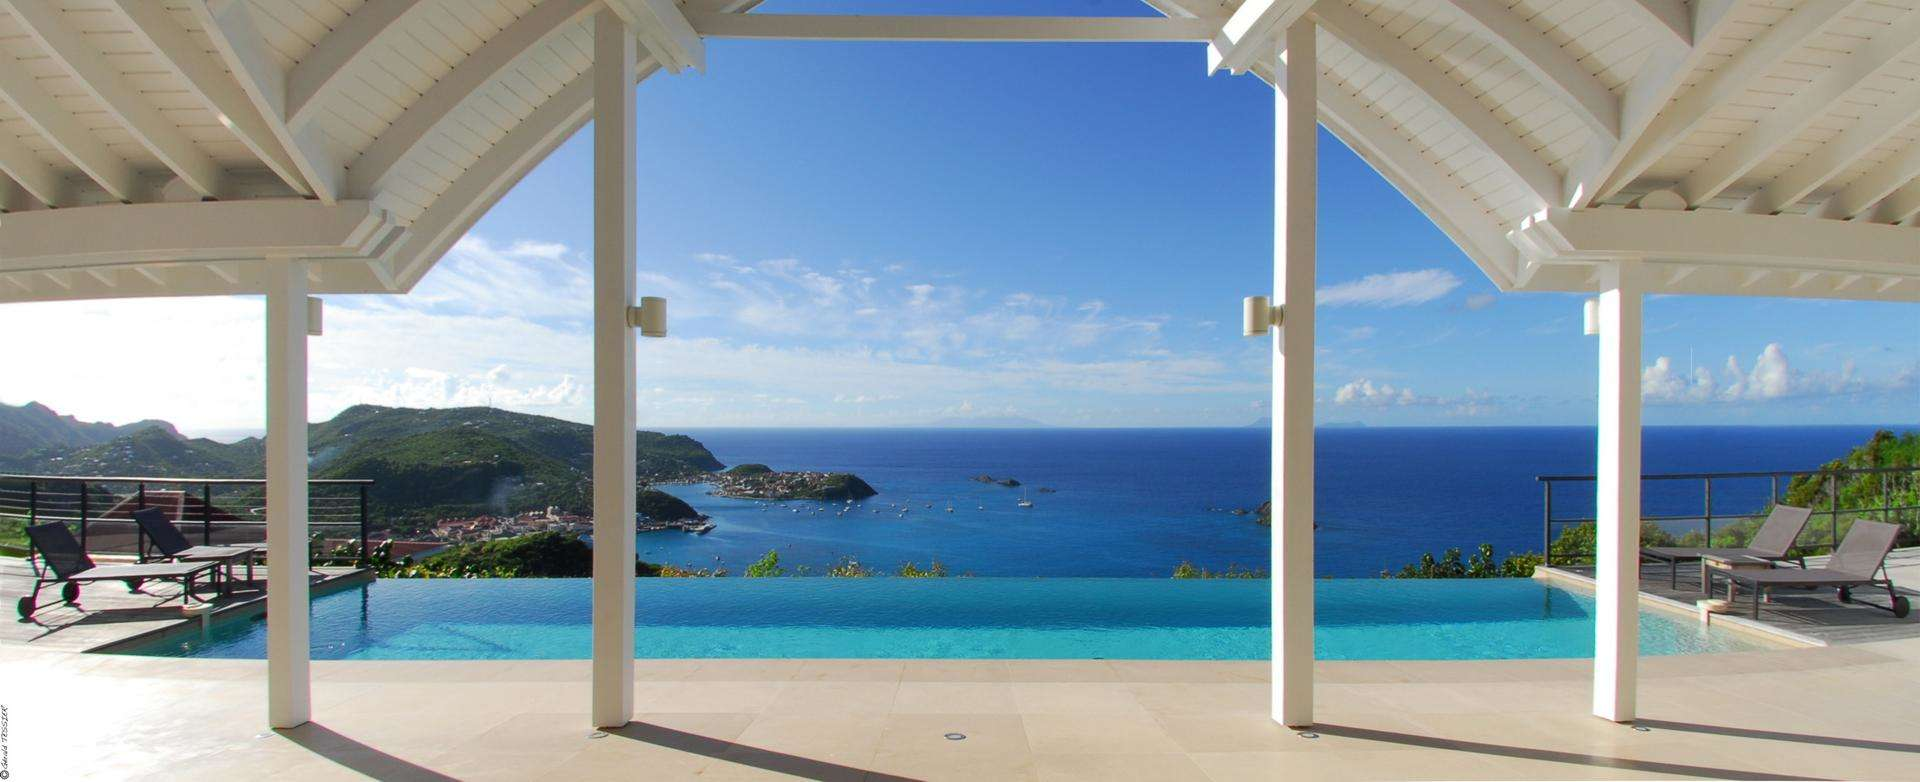 Luxury villa rentals caribbean - St barthelemy - Colombier - The View - Image 1/18